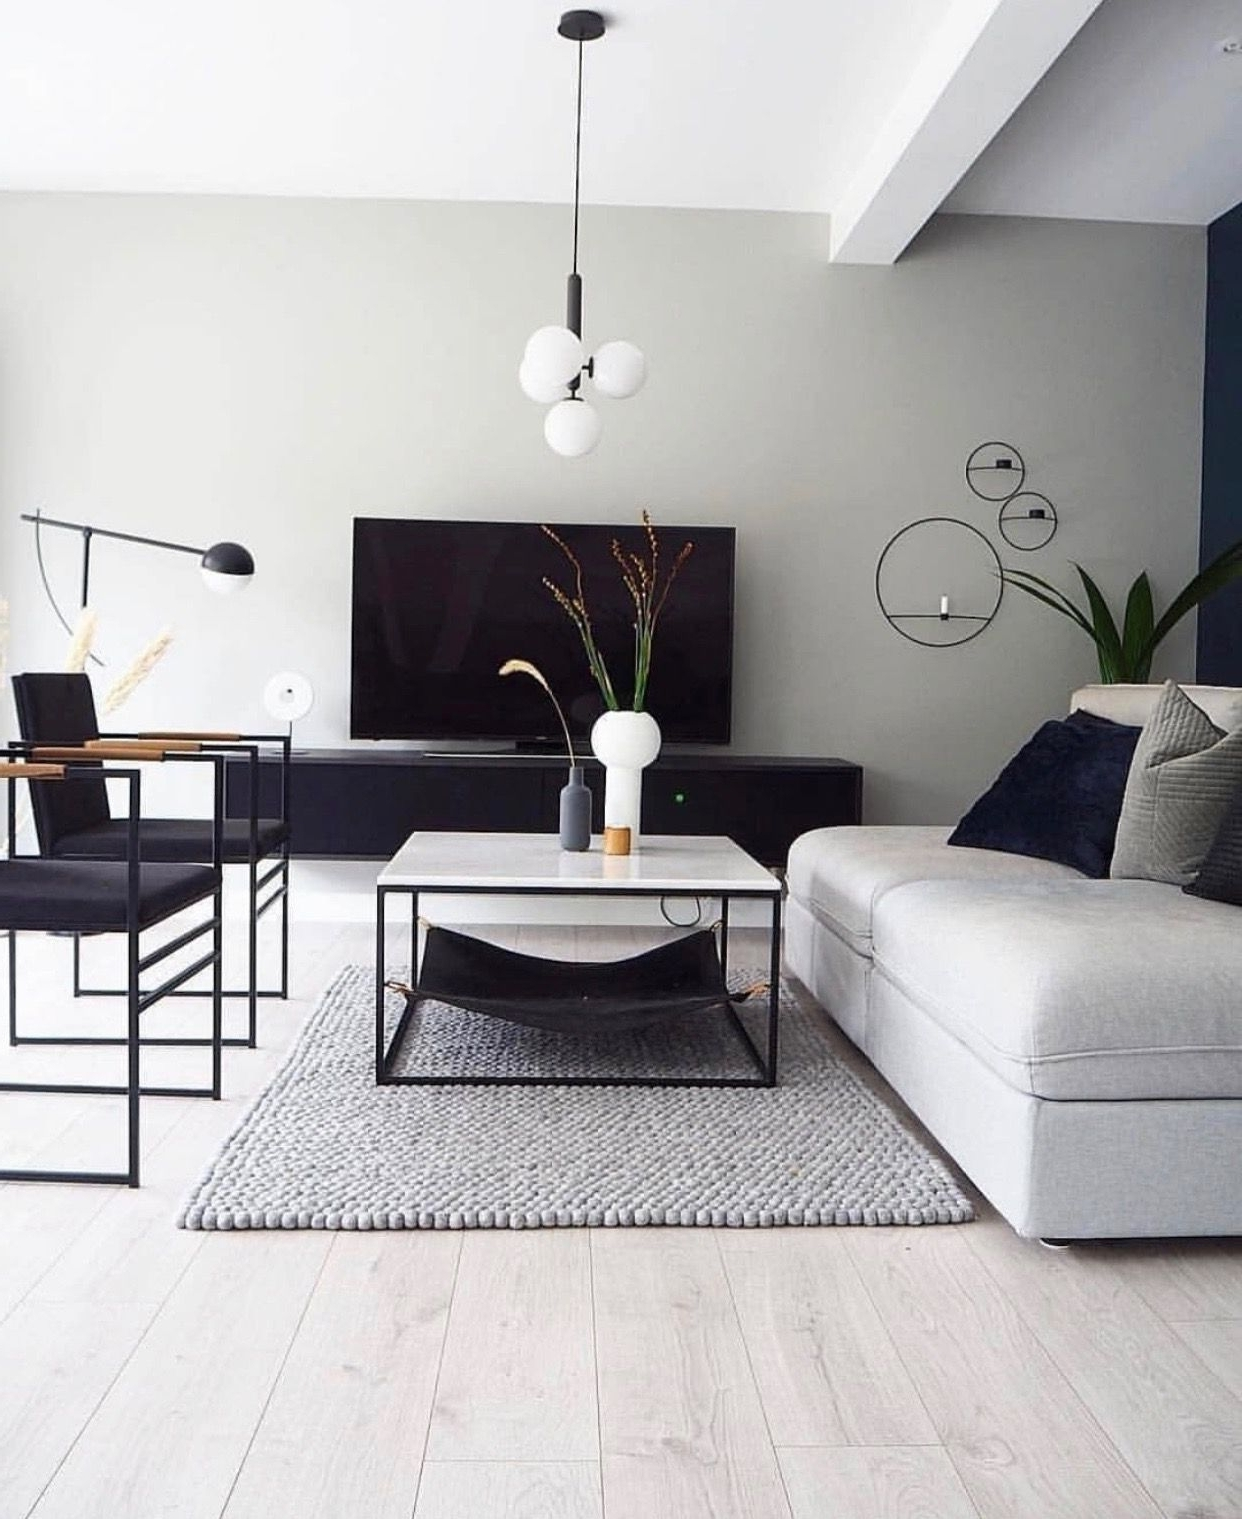 Beautiful Monochrome Living Room! The Clean Lines And 30+ Monochrome Living Room Decorating Inspirations